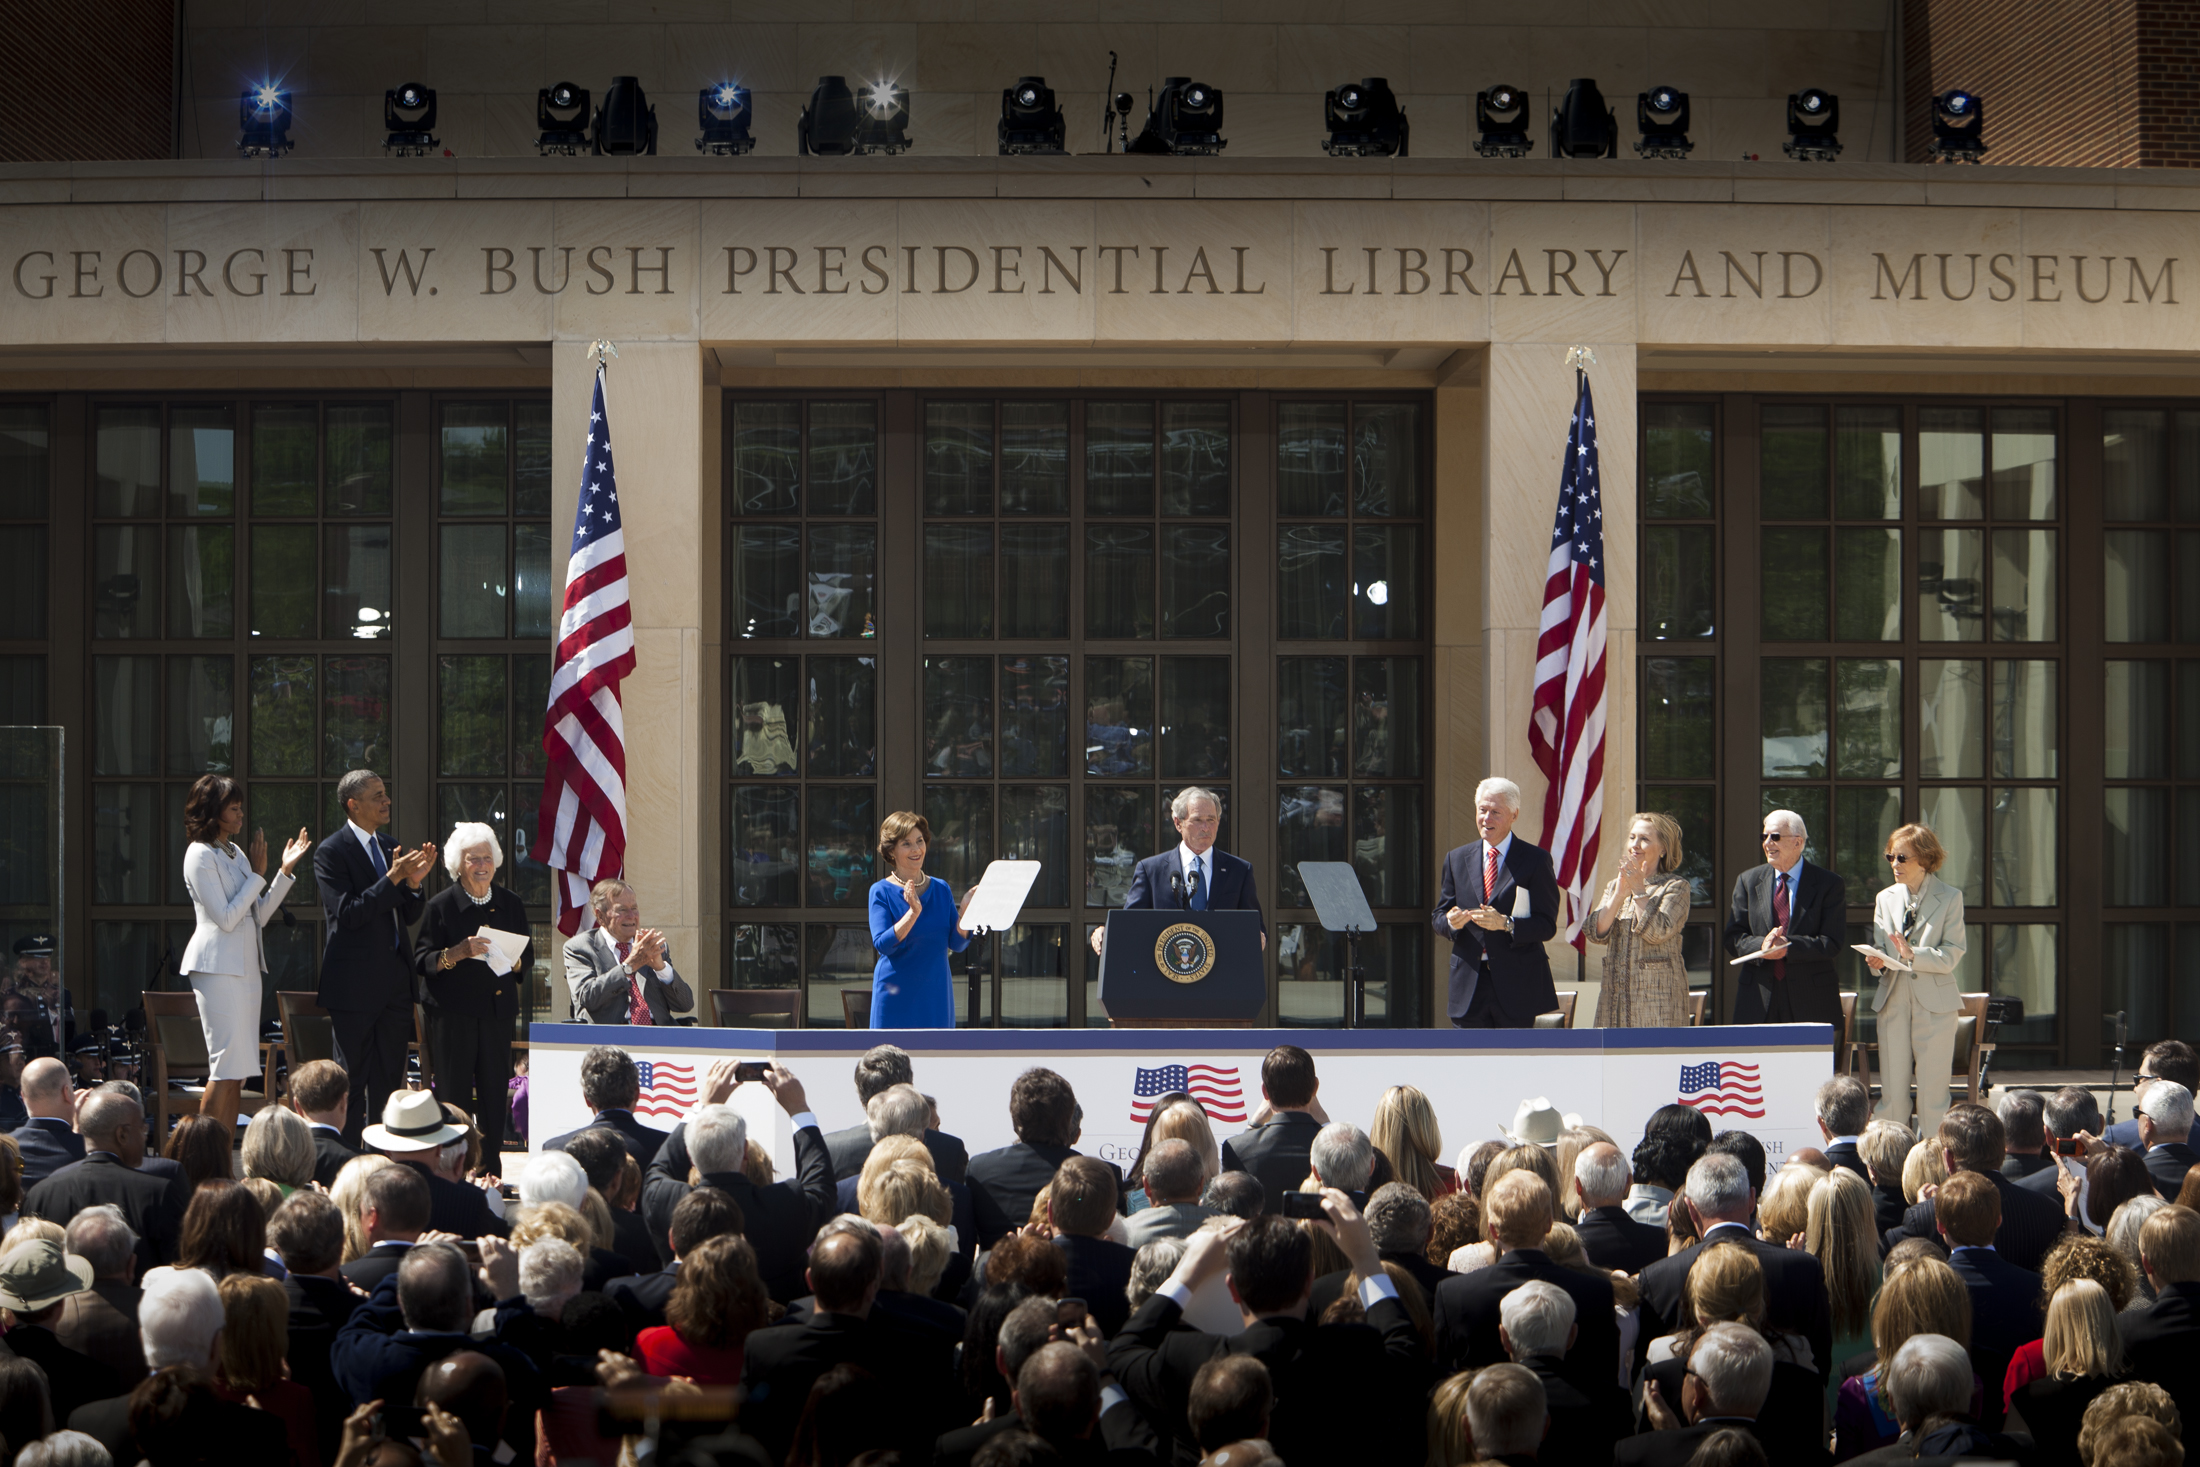 Bush Center Dedication